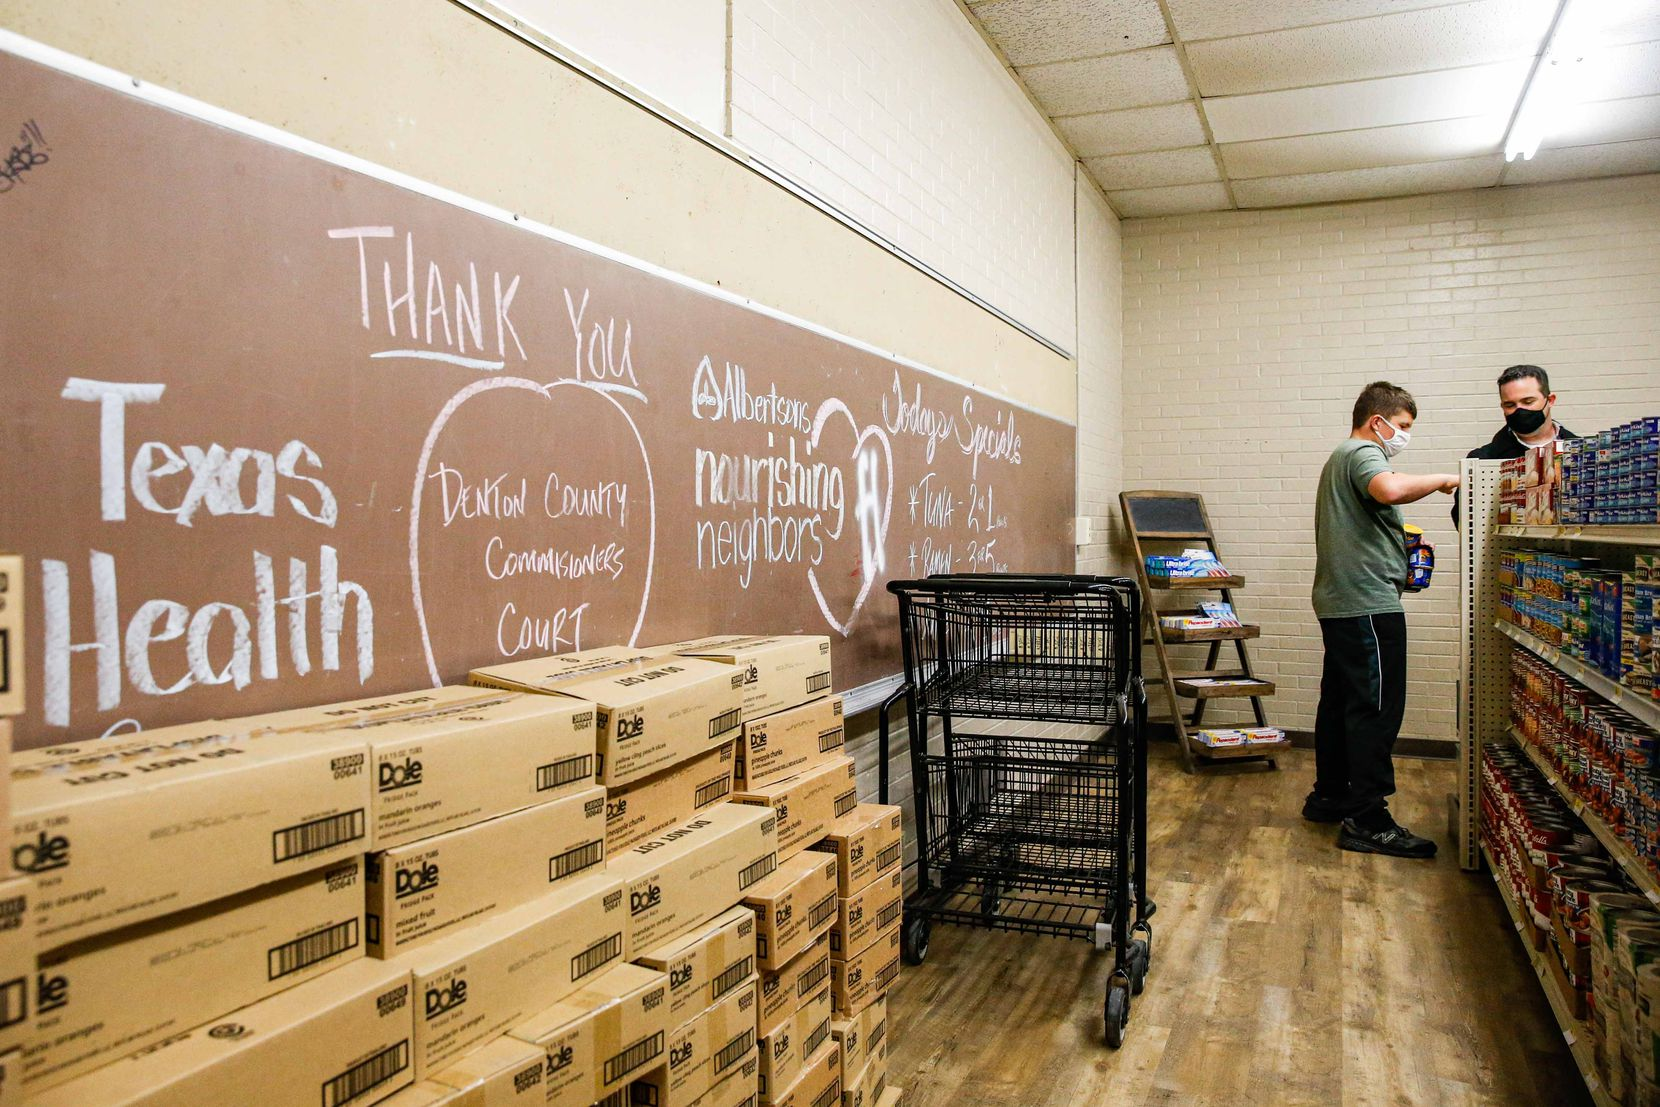 The grocery store doesn't accept cash. Students can earn points to cash in through good deeds, such as recycling.